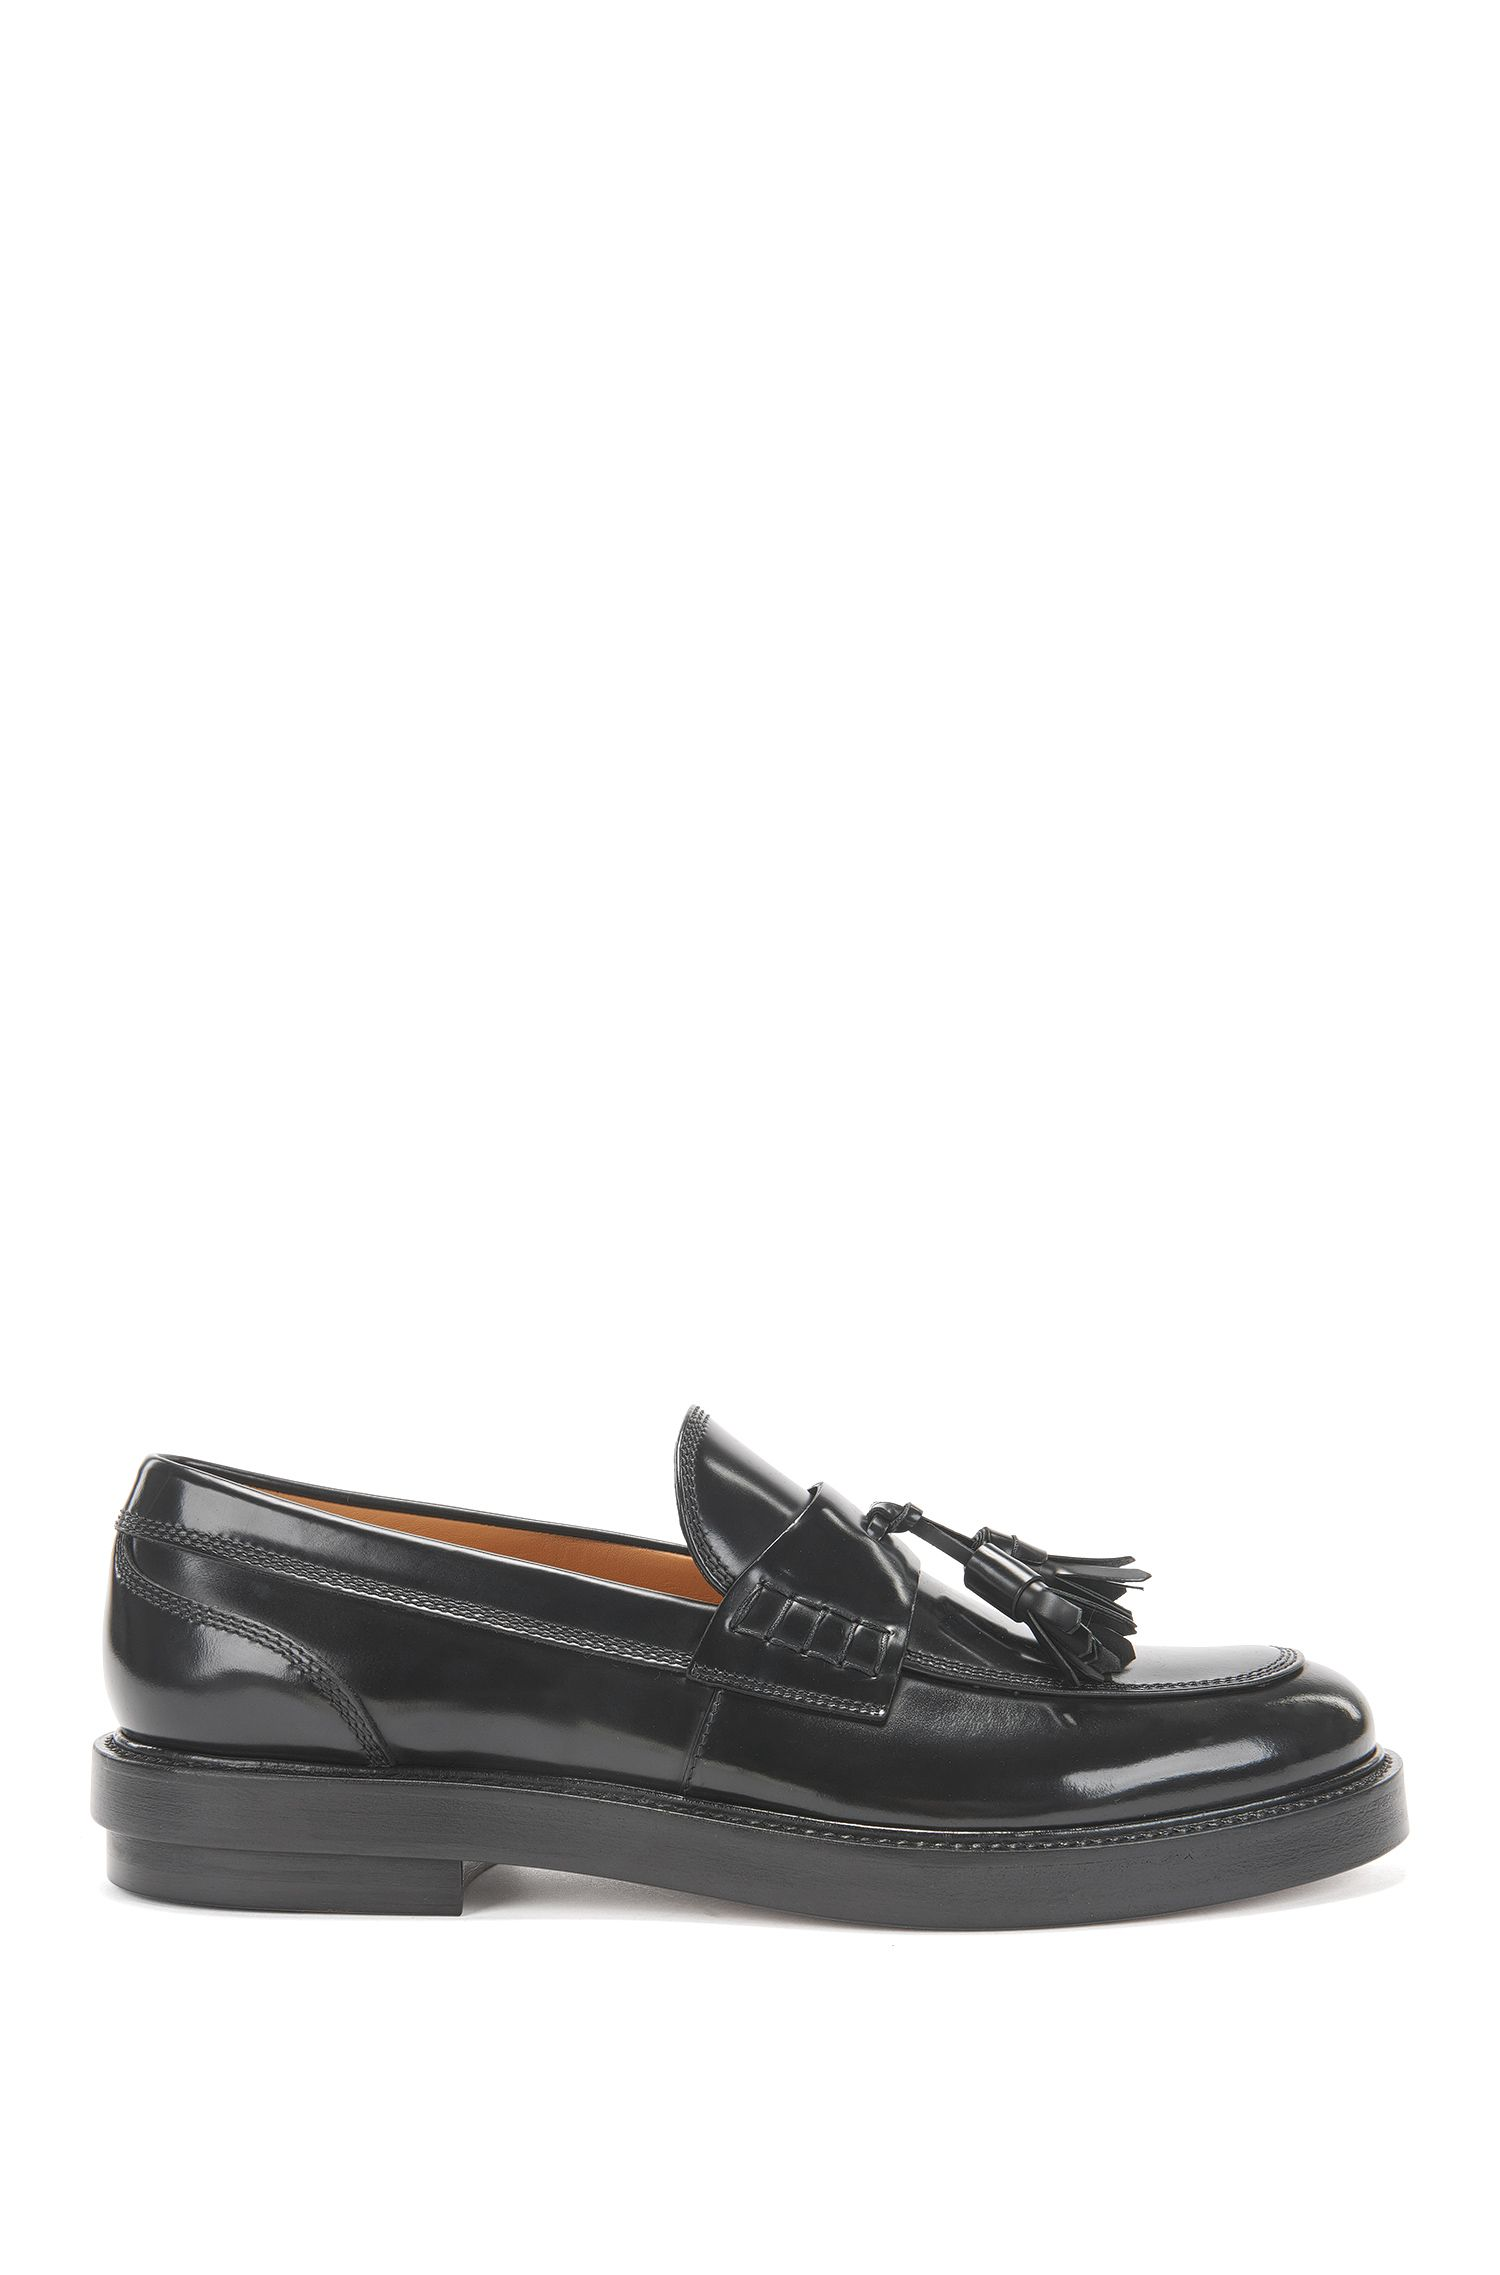 Tassel loafers in brush-off leather